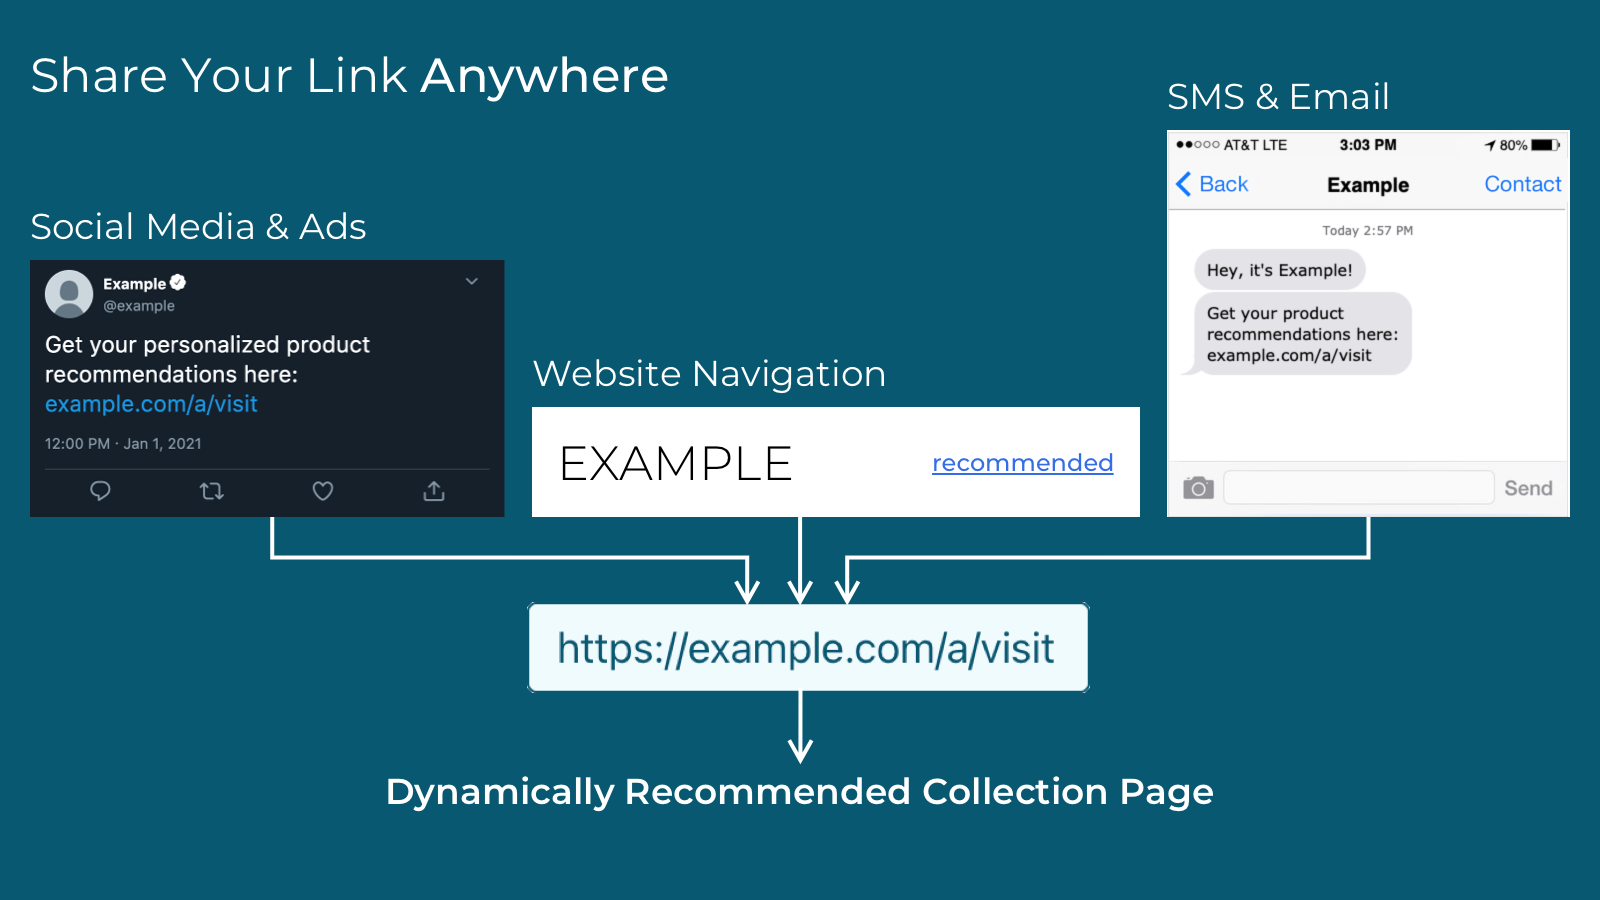 Share your link dynamic anywhere on the internet